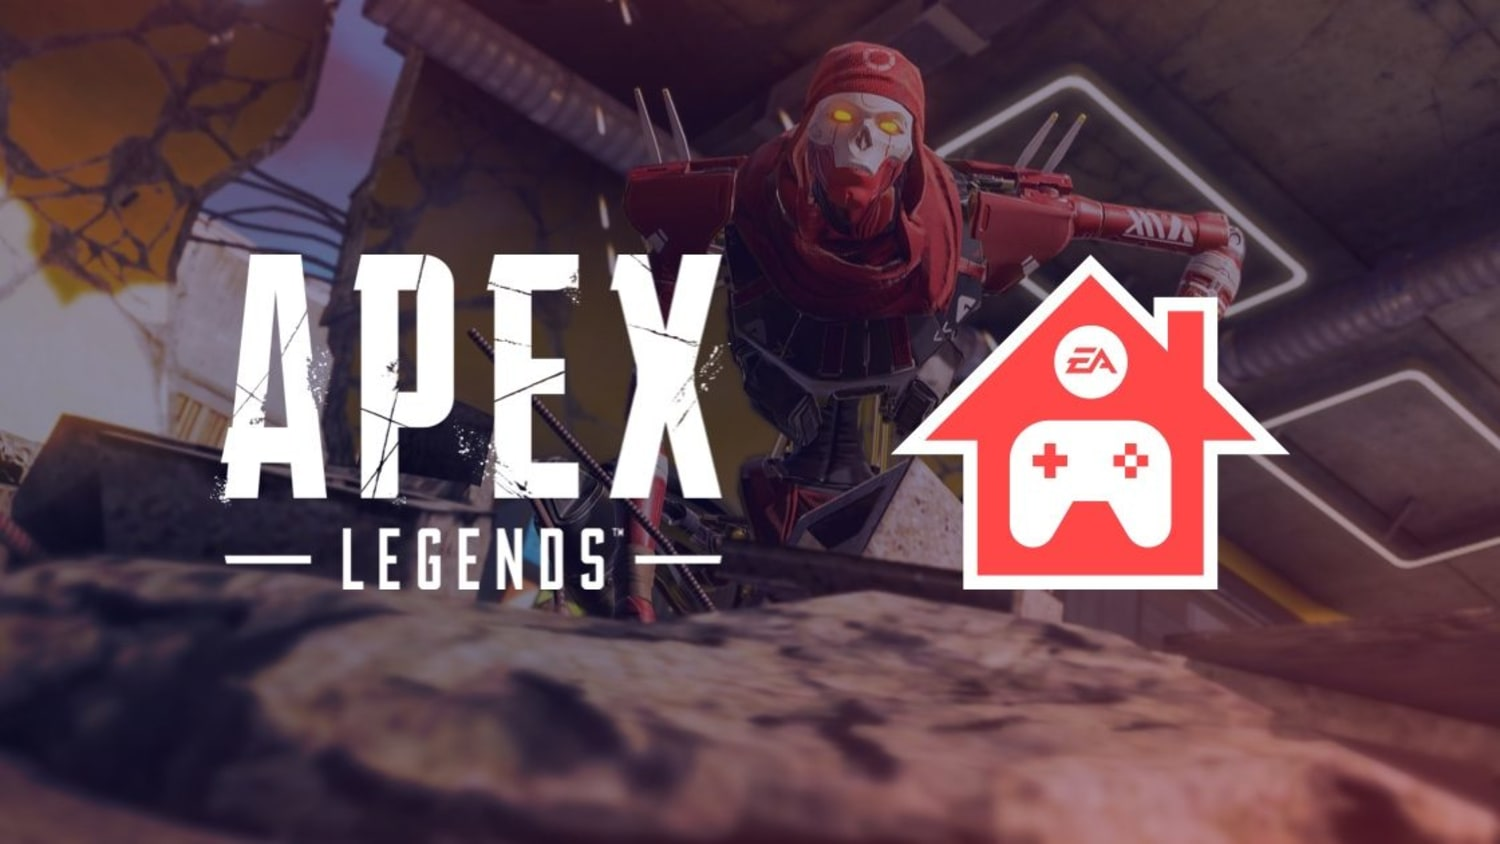 Stay and play grid tile apex legends jpg adapt crop16x9